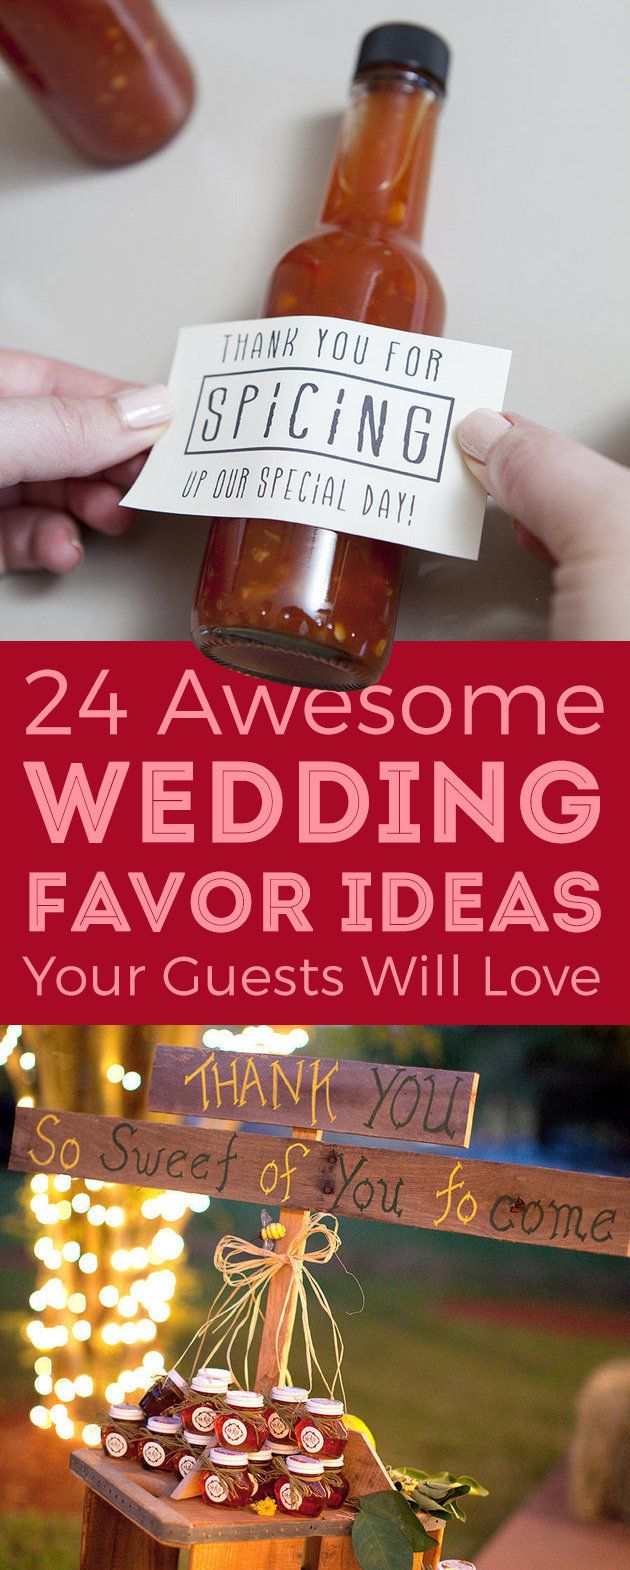 wedding favor ideas that dont suck us c unique wedding favors Most involve food and alcohol naturally